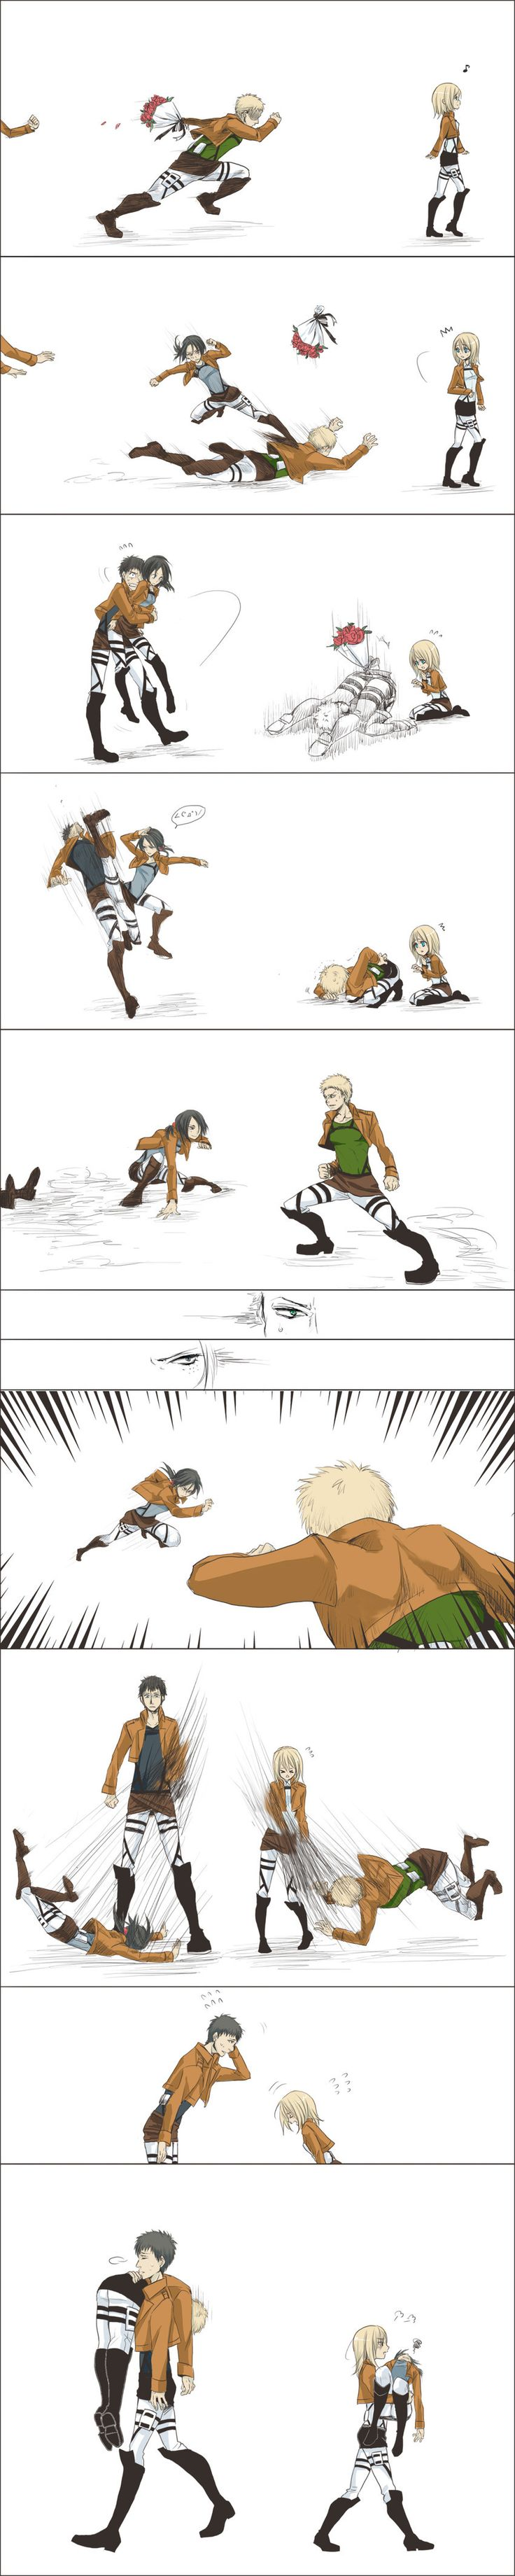 Short Comic [ymir+reiner+bert+christa]